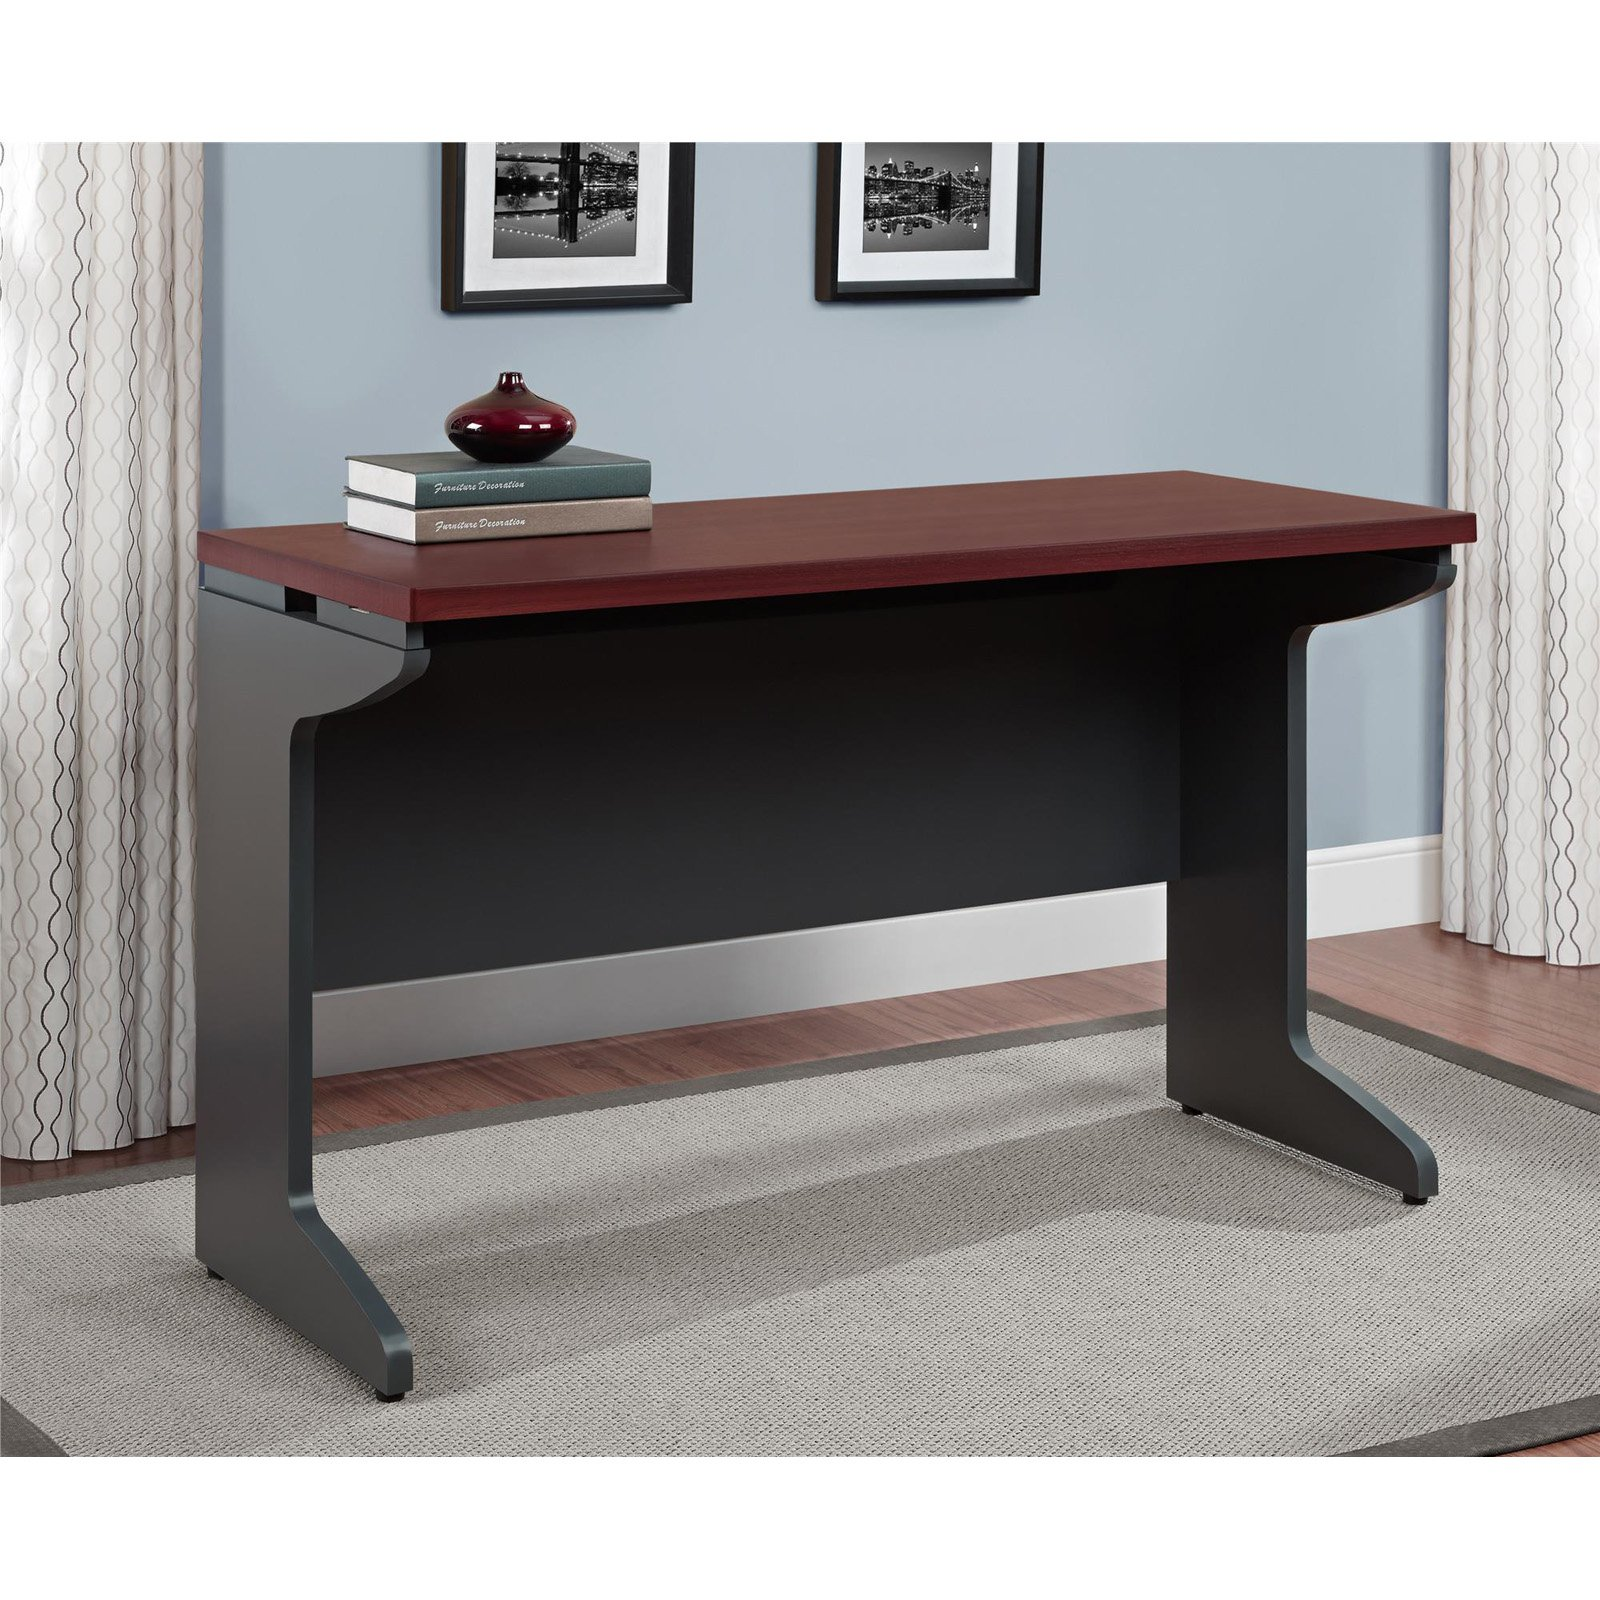 Ameriwood Home Pursuit Bridge Table, Cherry/Gray